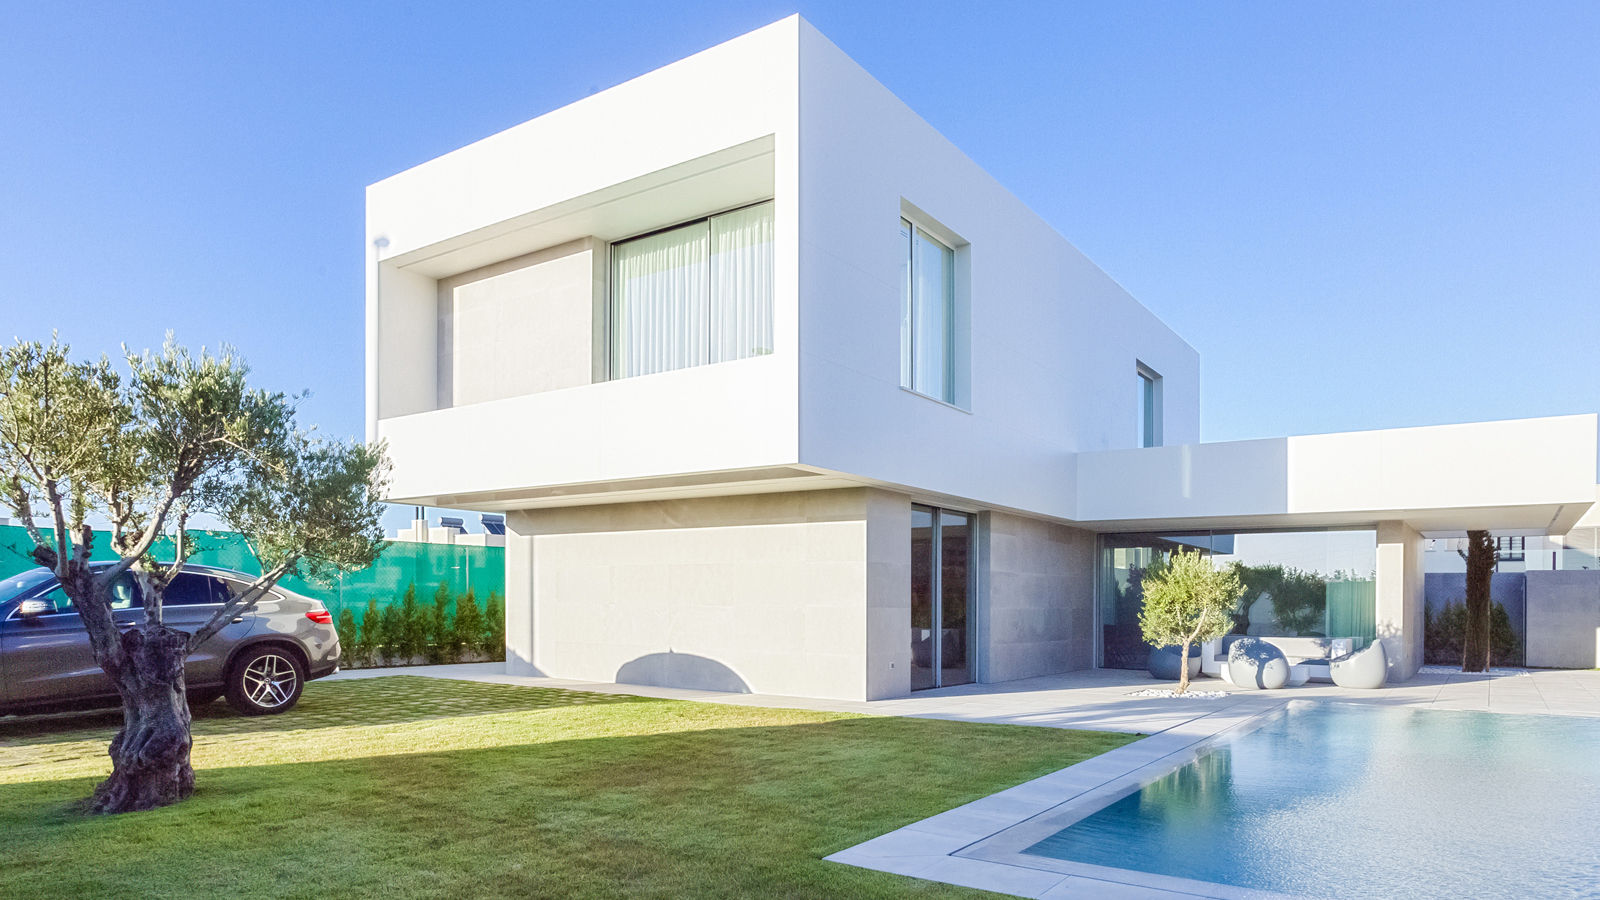 PORCELANOSA Group Project: An architectural review of the white villages in Jerez de la Frontera